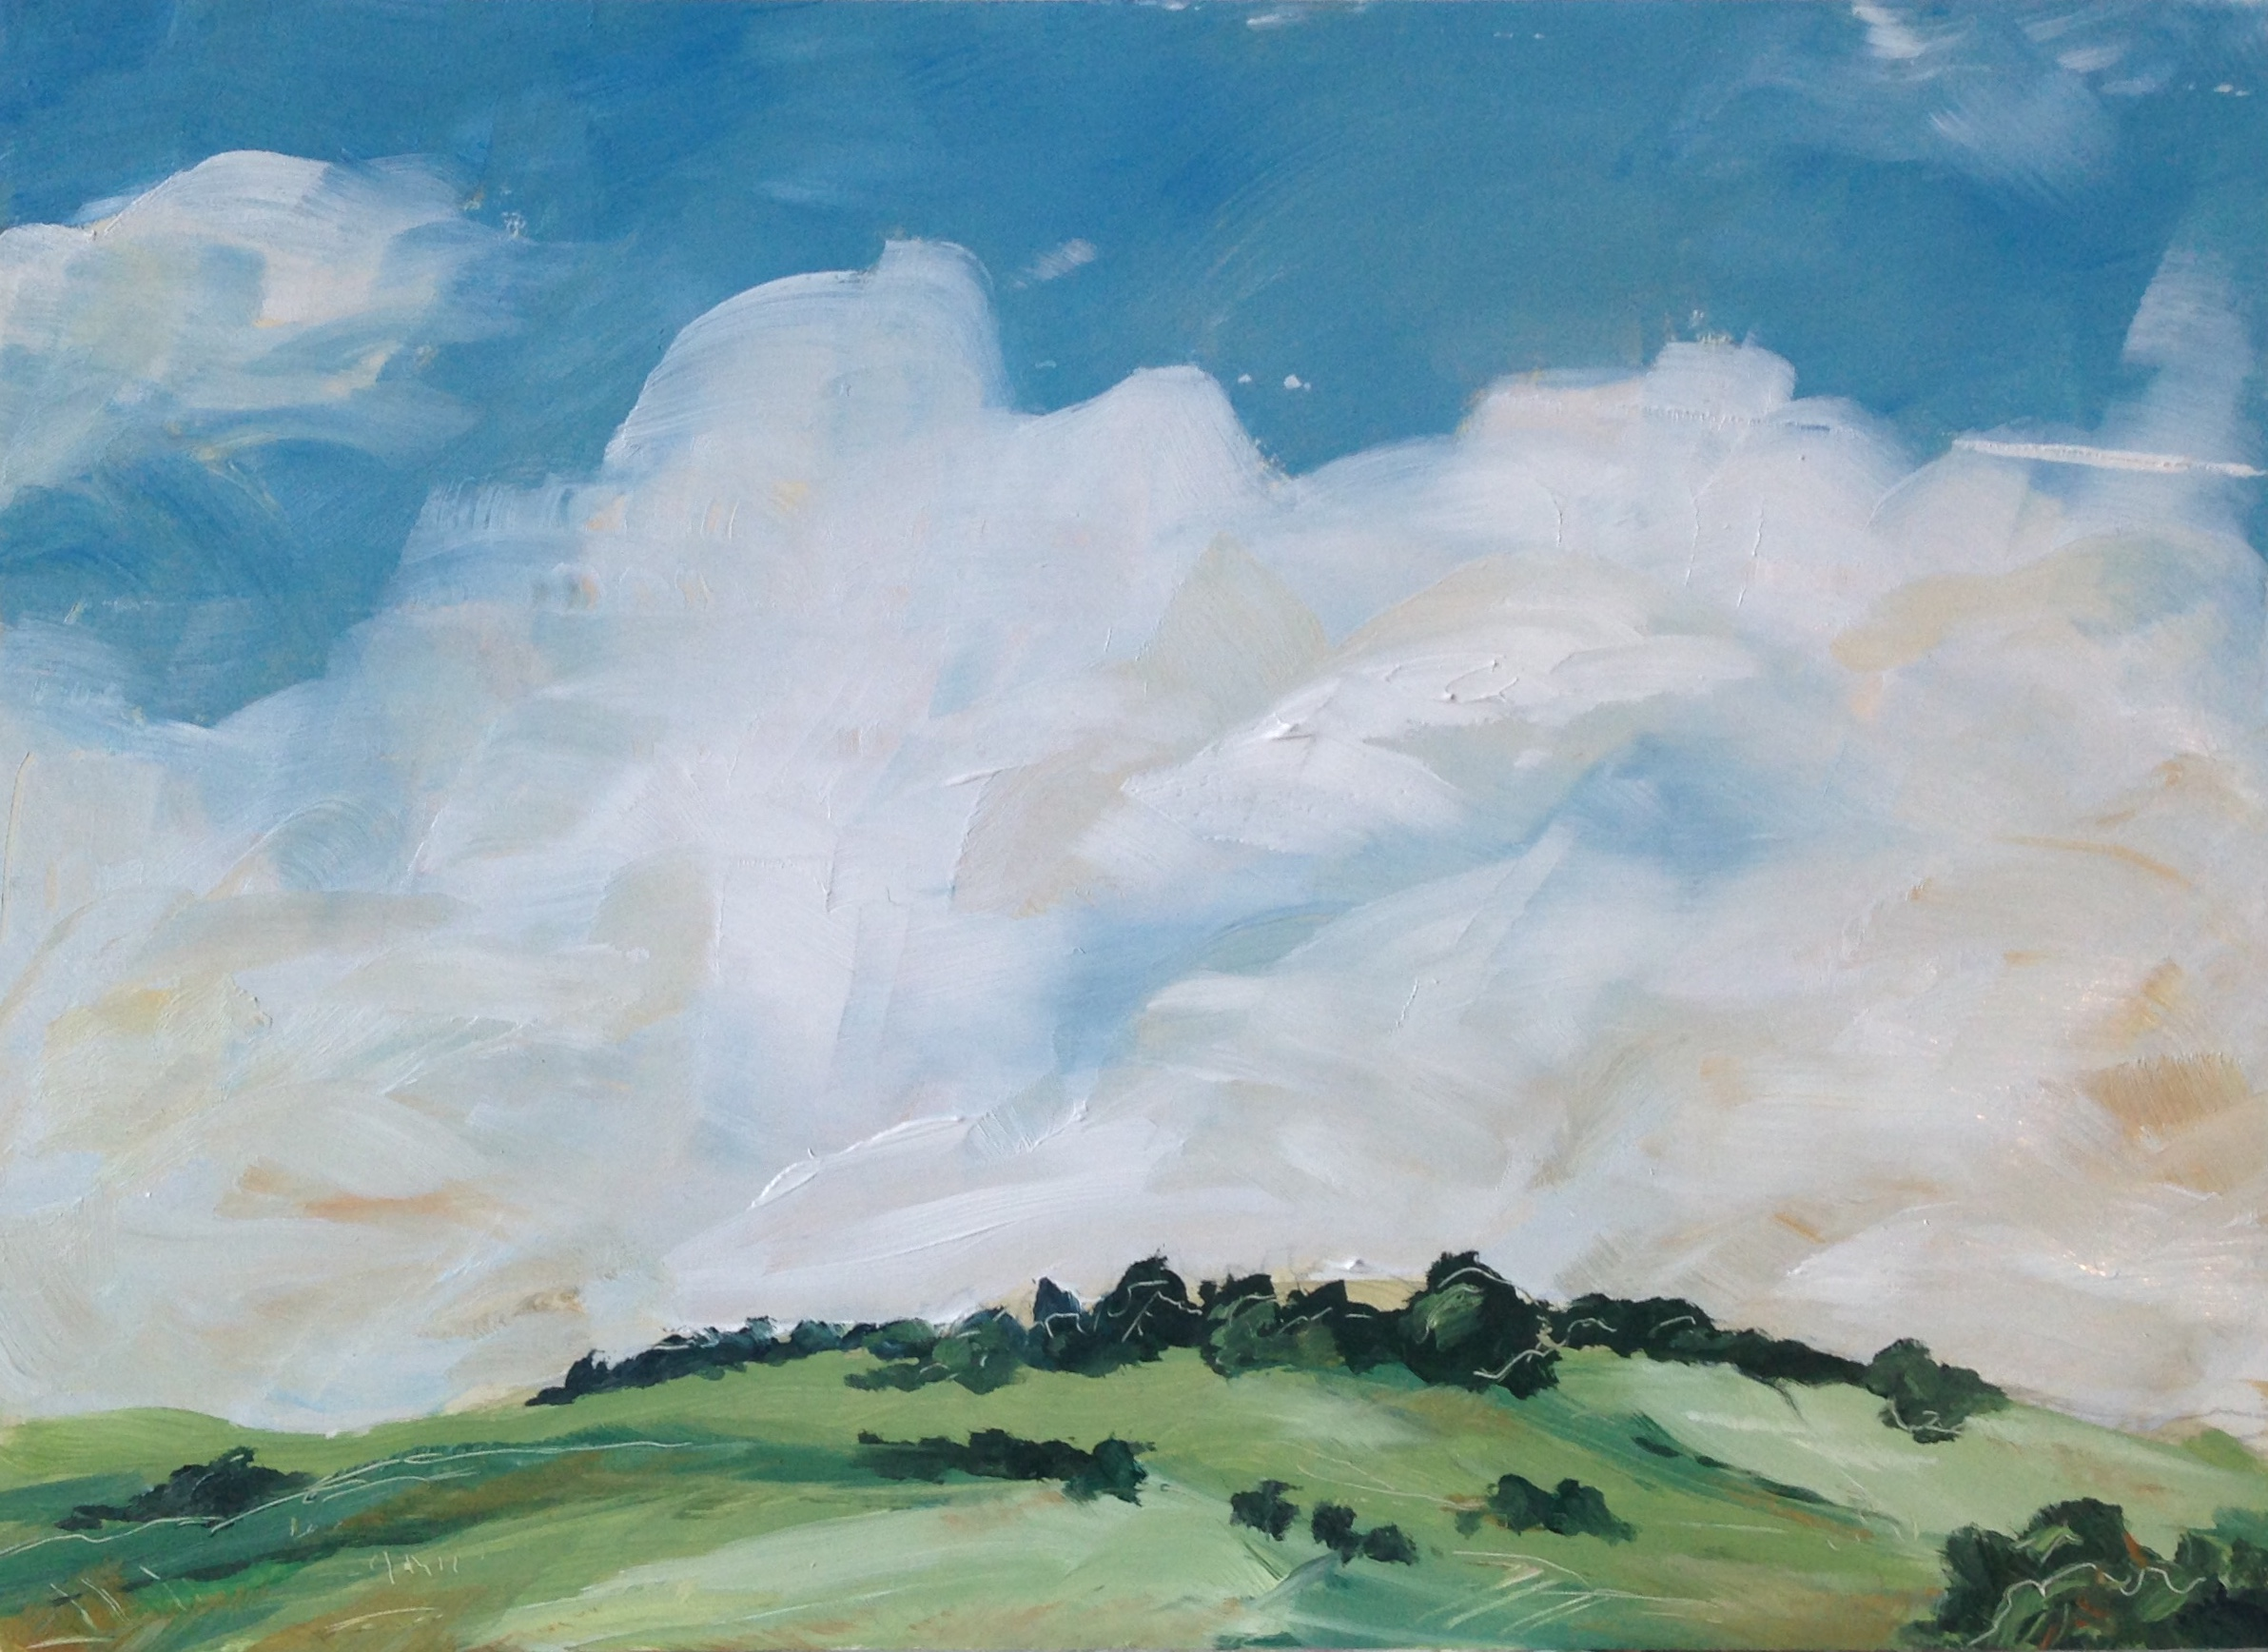 Derbyshire Dales Landscape painting in oils February 2018